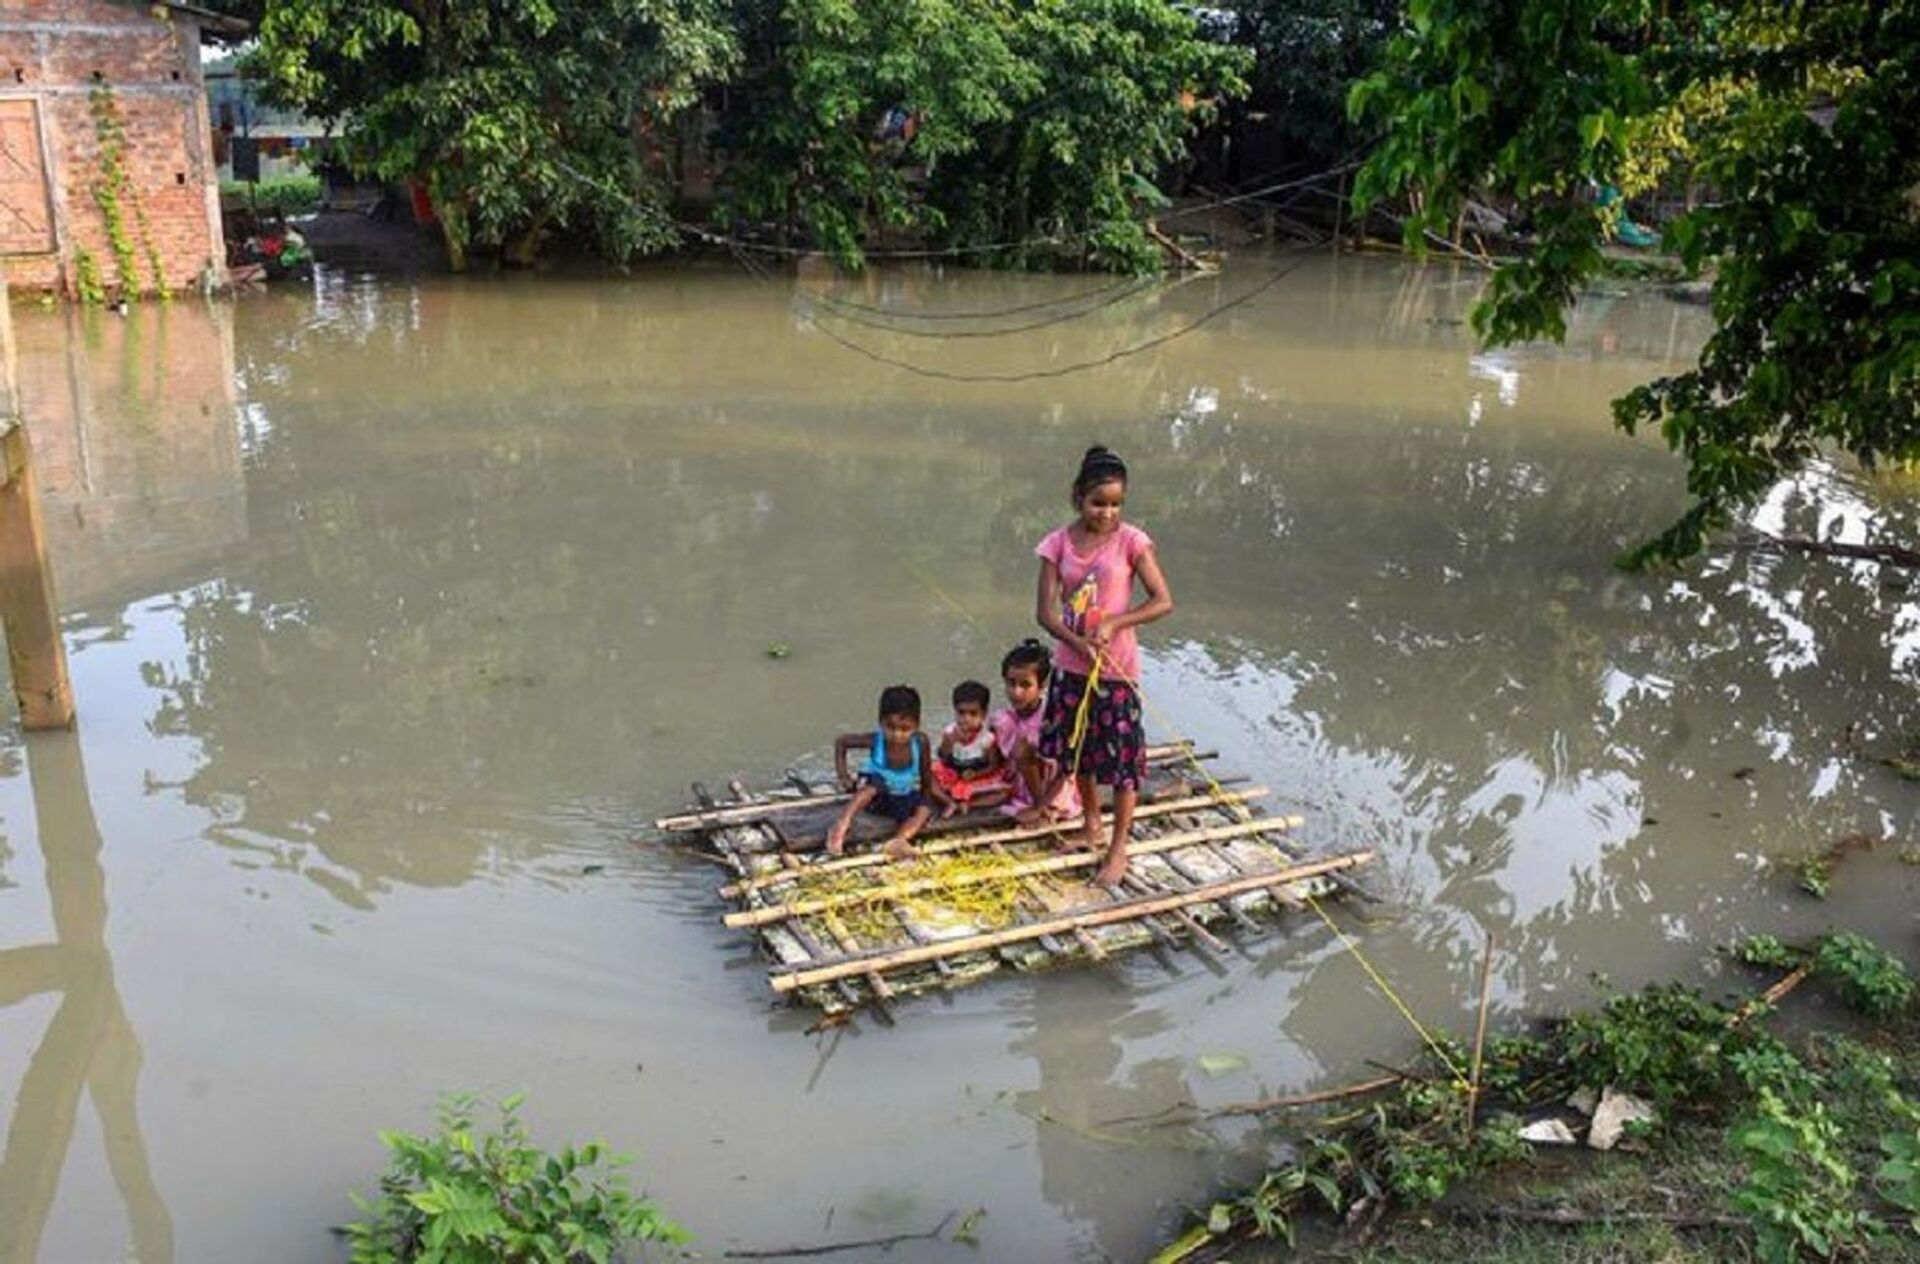 Over 9 Lakh affected in 23 districts as flood situation worsens - Sputnik International, 1920, 07.09.2021